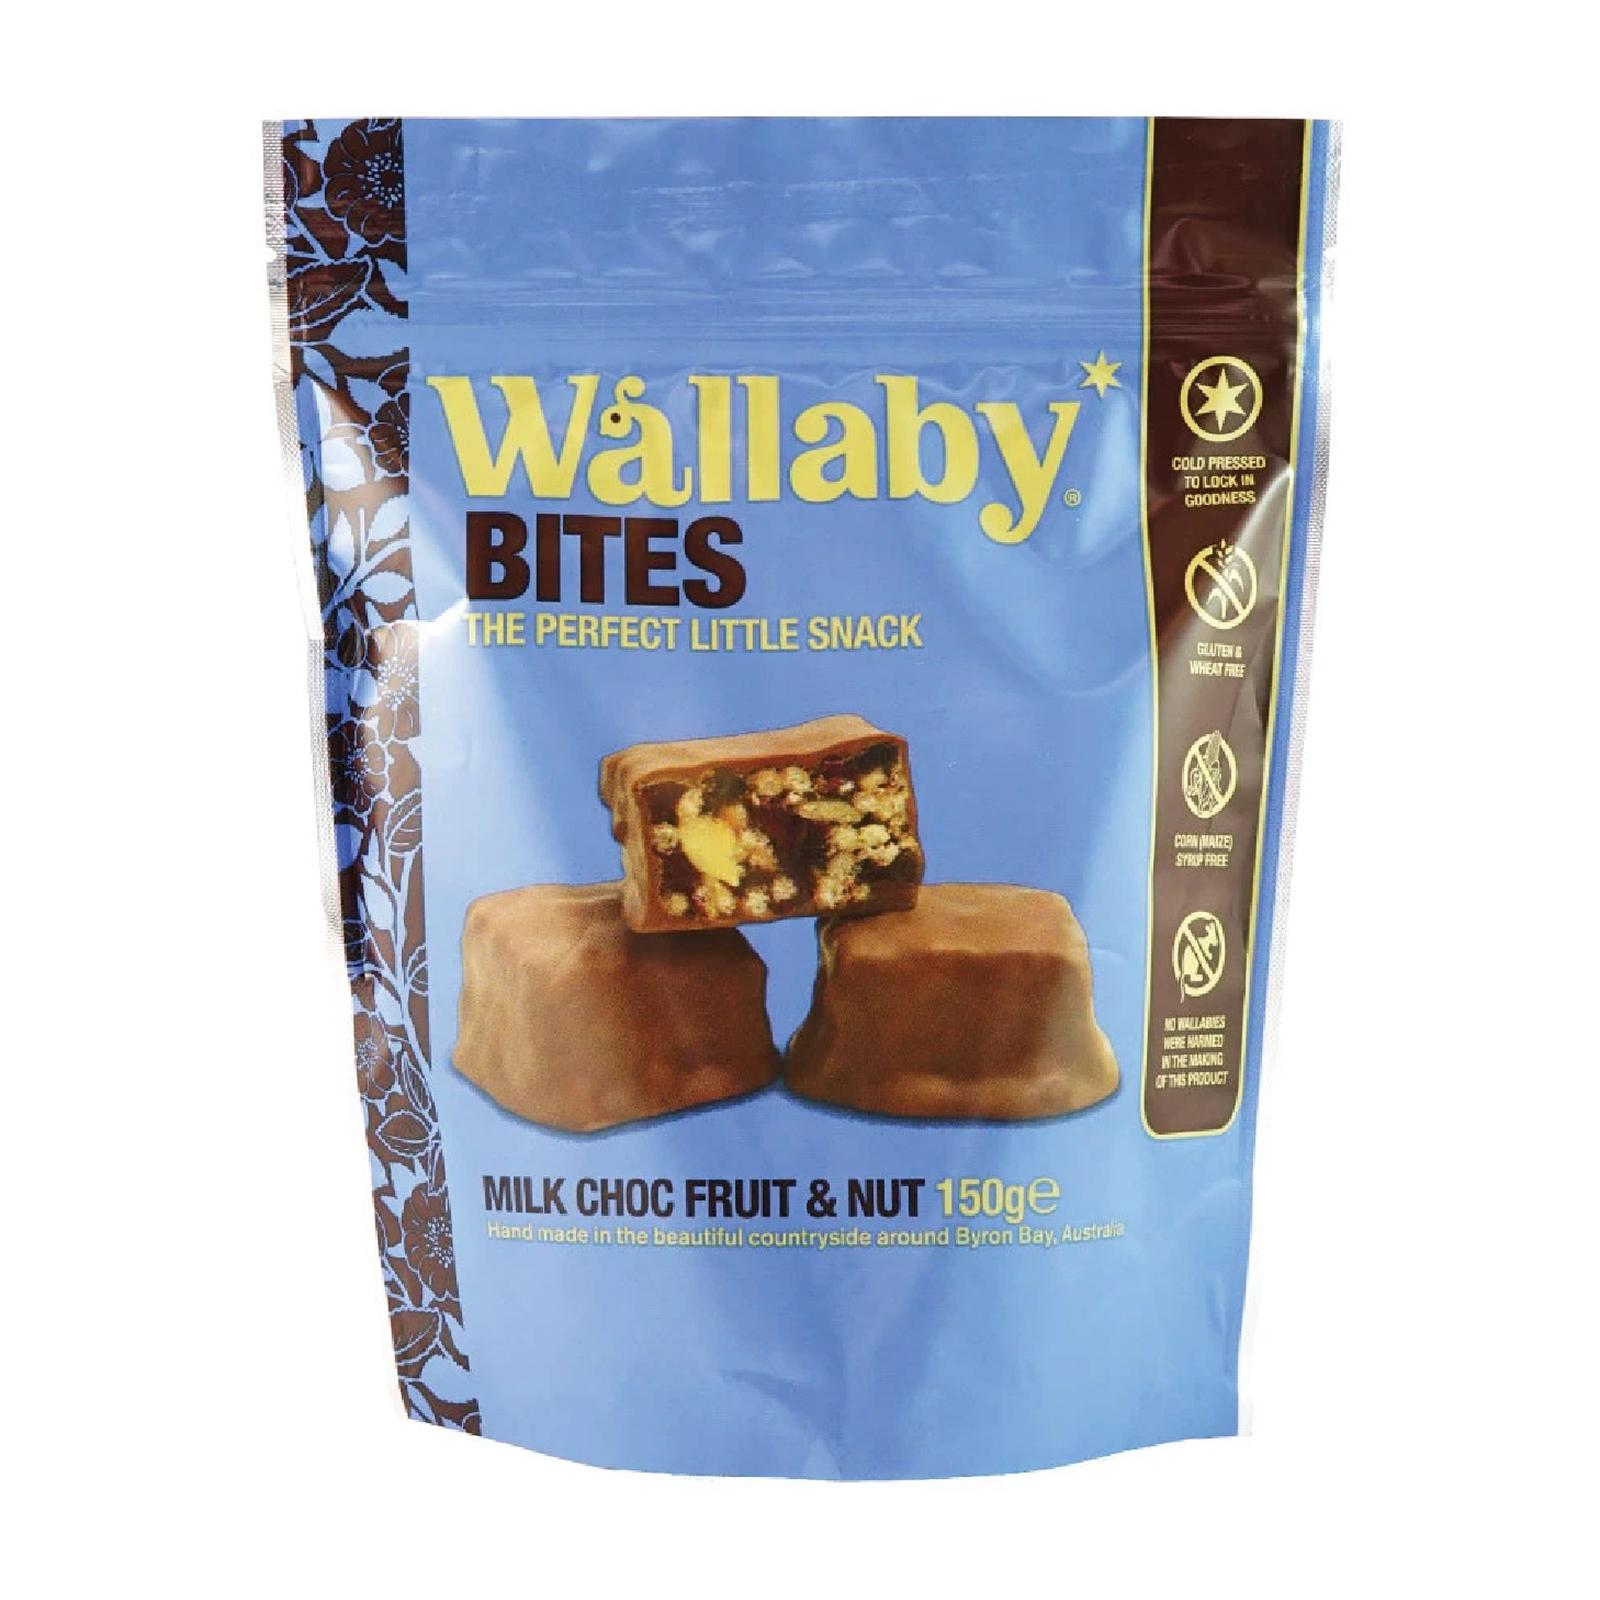 Wallaby BITES Milk Chocolate Fruit And Nut